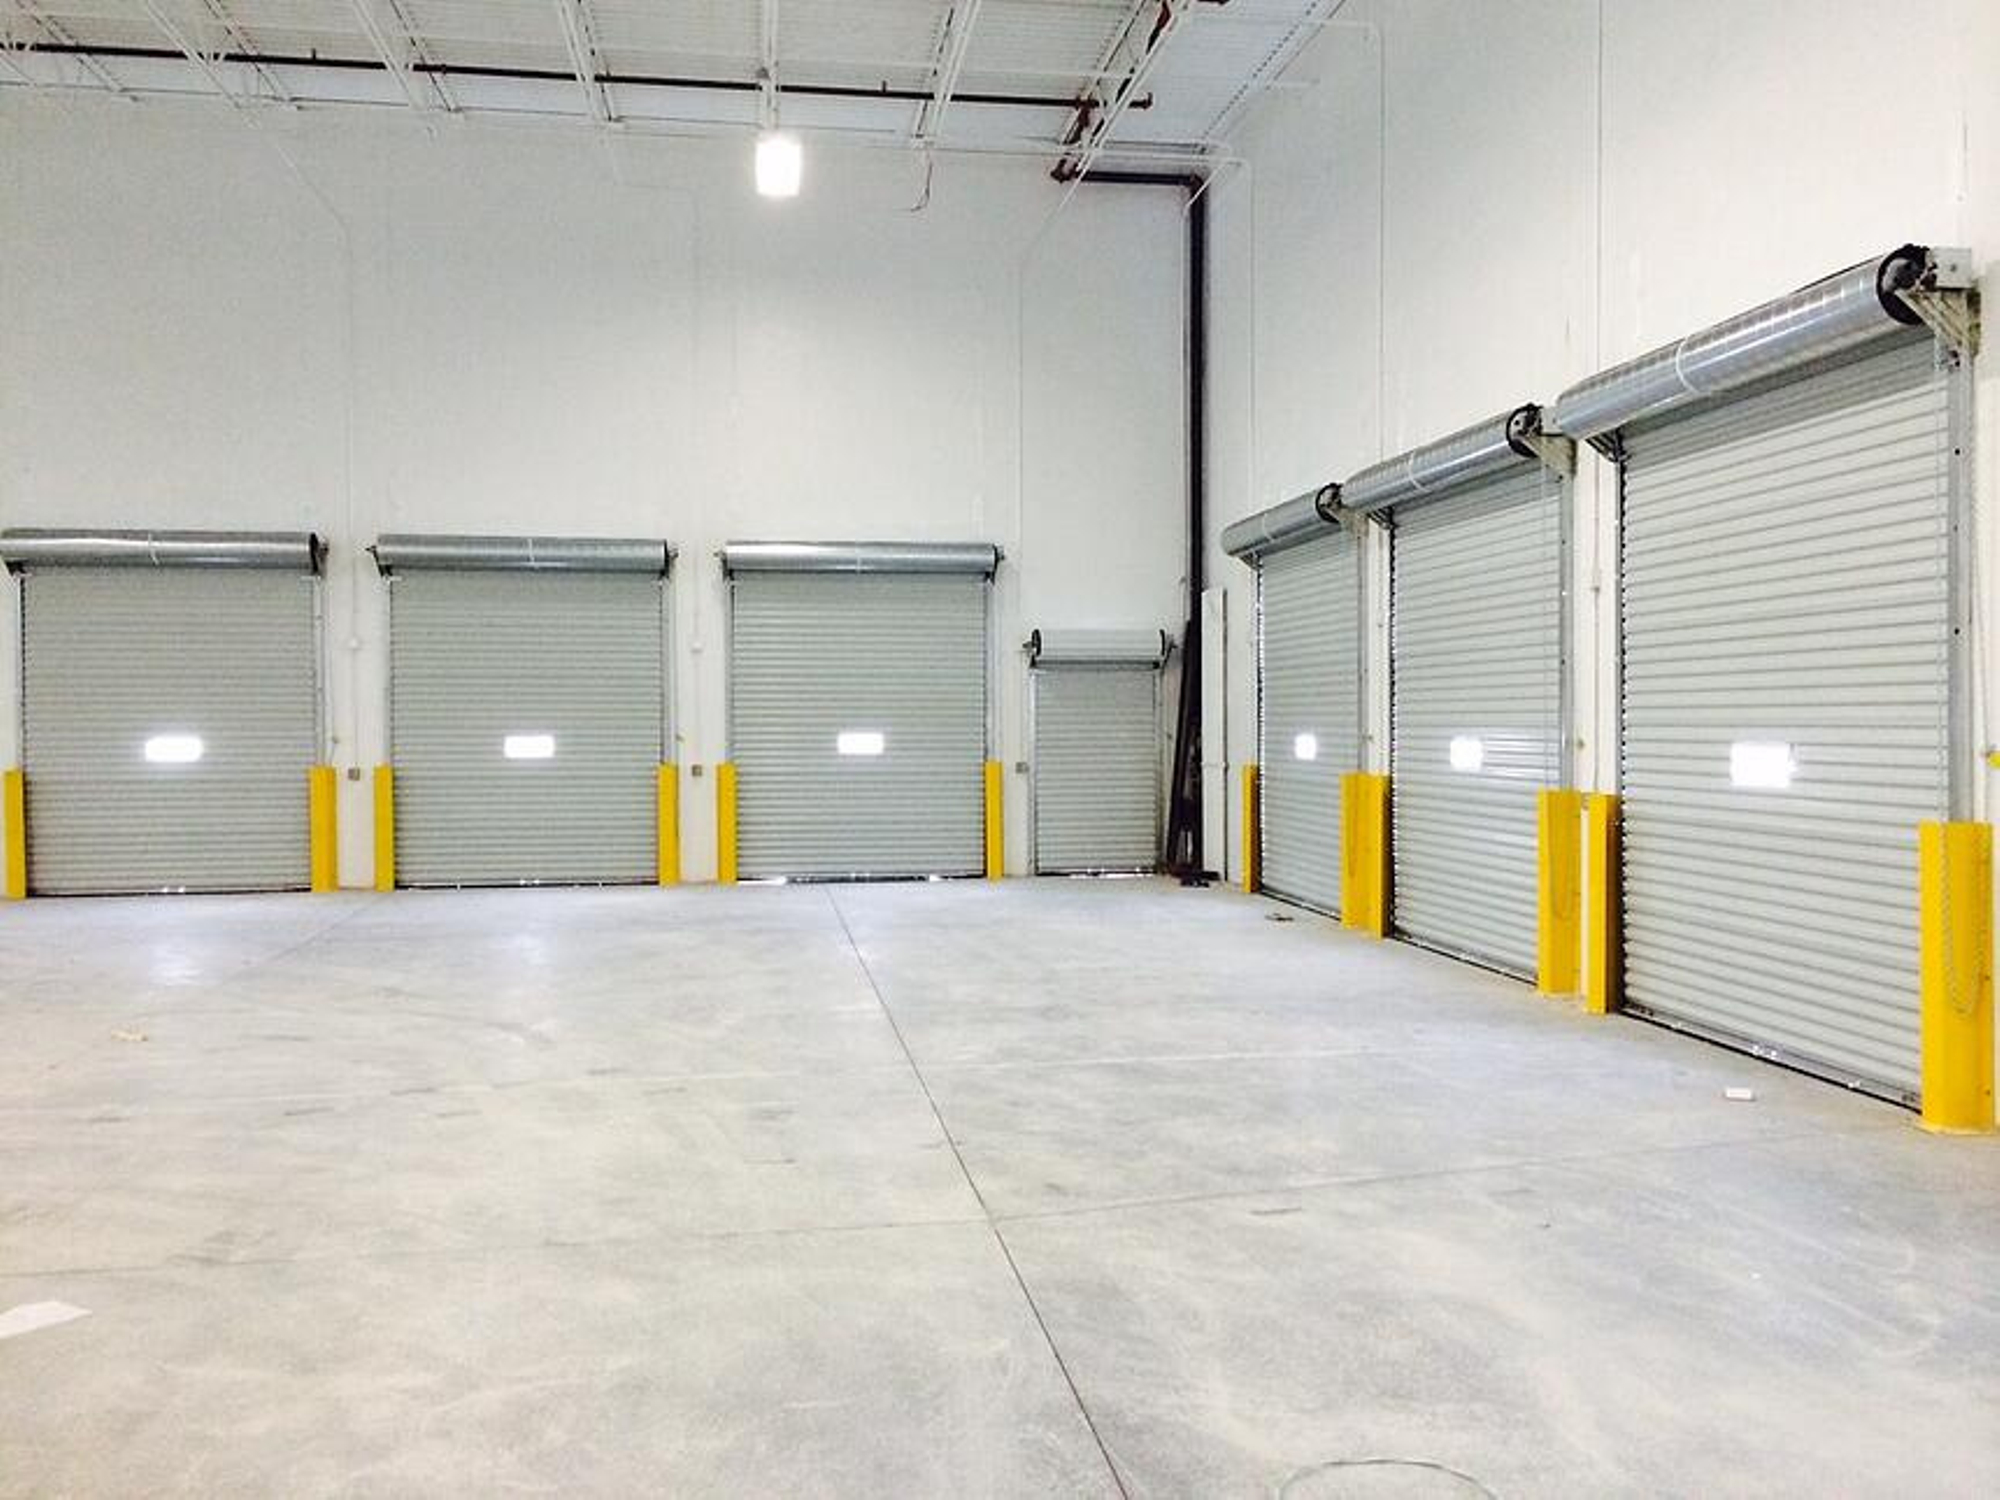 Commercial Roll-up Doors in ADP Freight Terminal